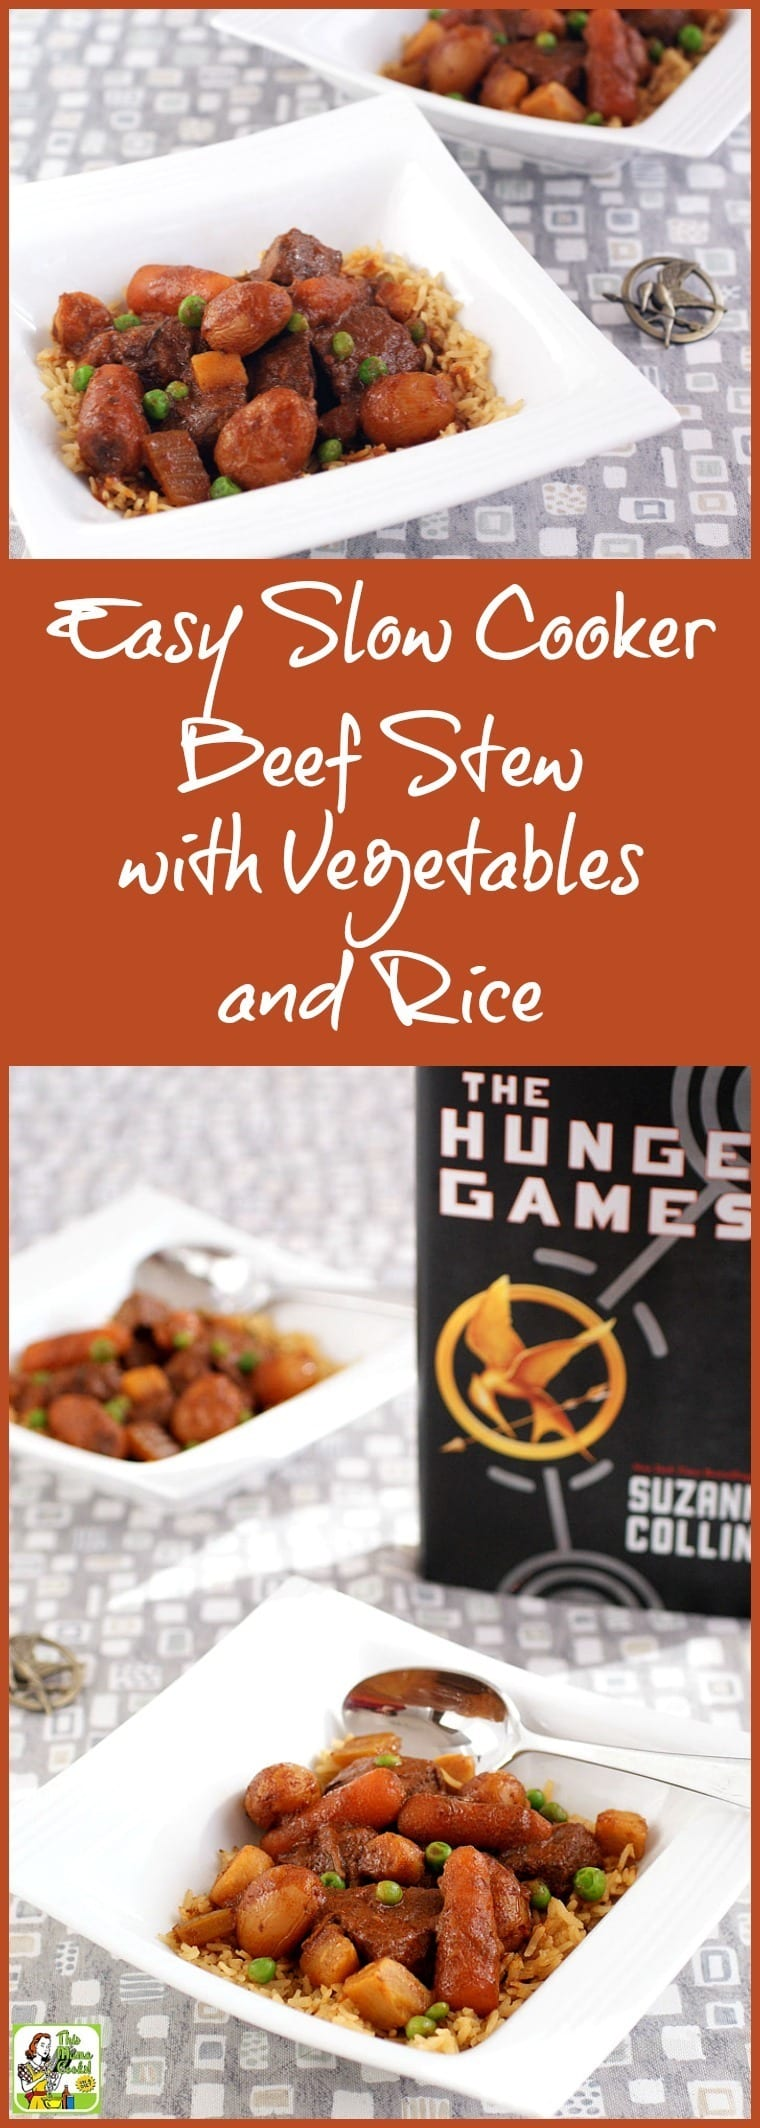 Based on The Hunger Games, this slow cooker beef stew recipe is easy to make. Click to get the Easy Slow Cooker Beef Stew with Vegetables and Rice recipe.